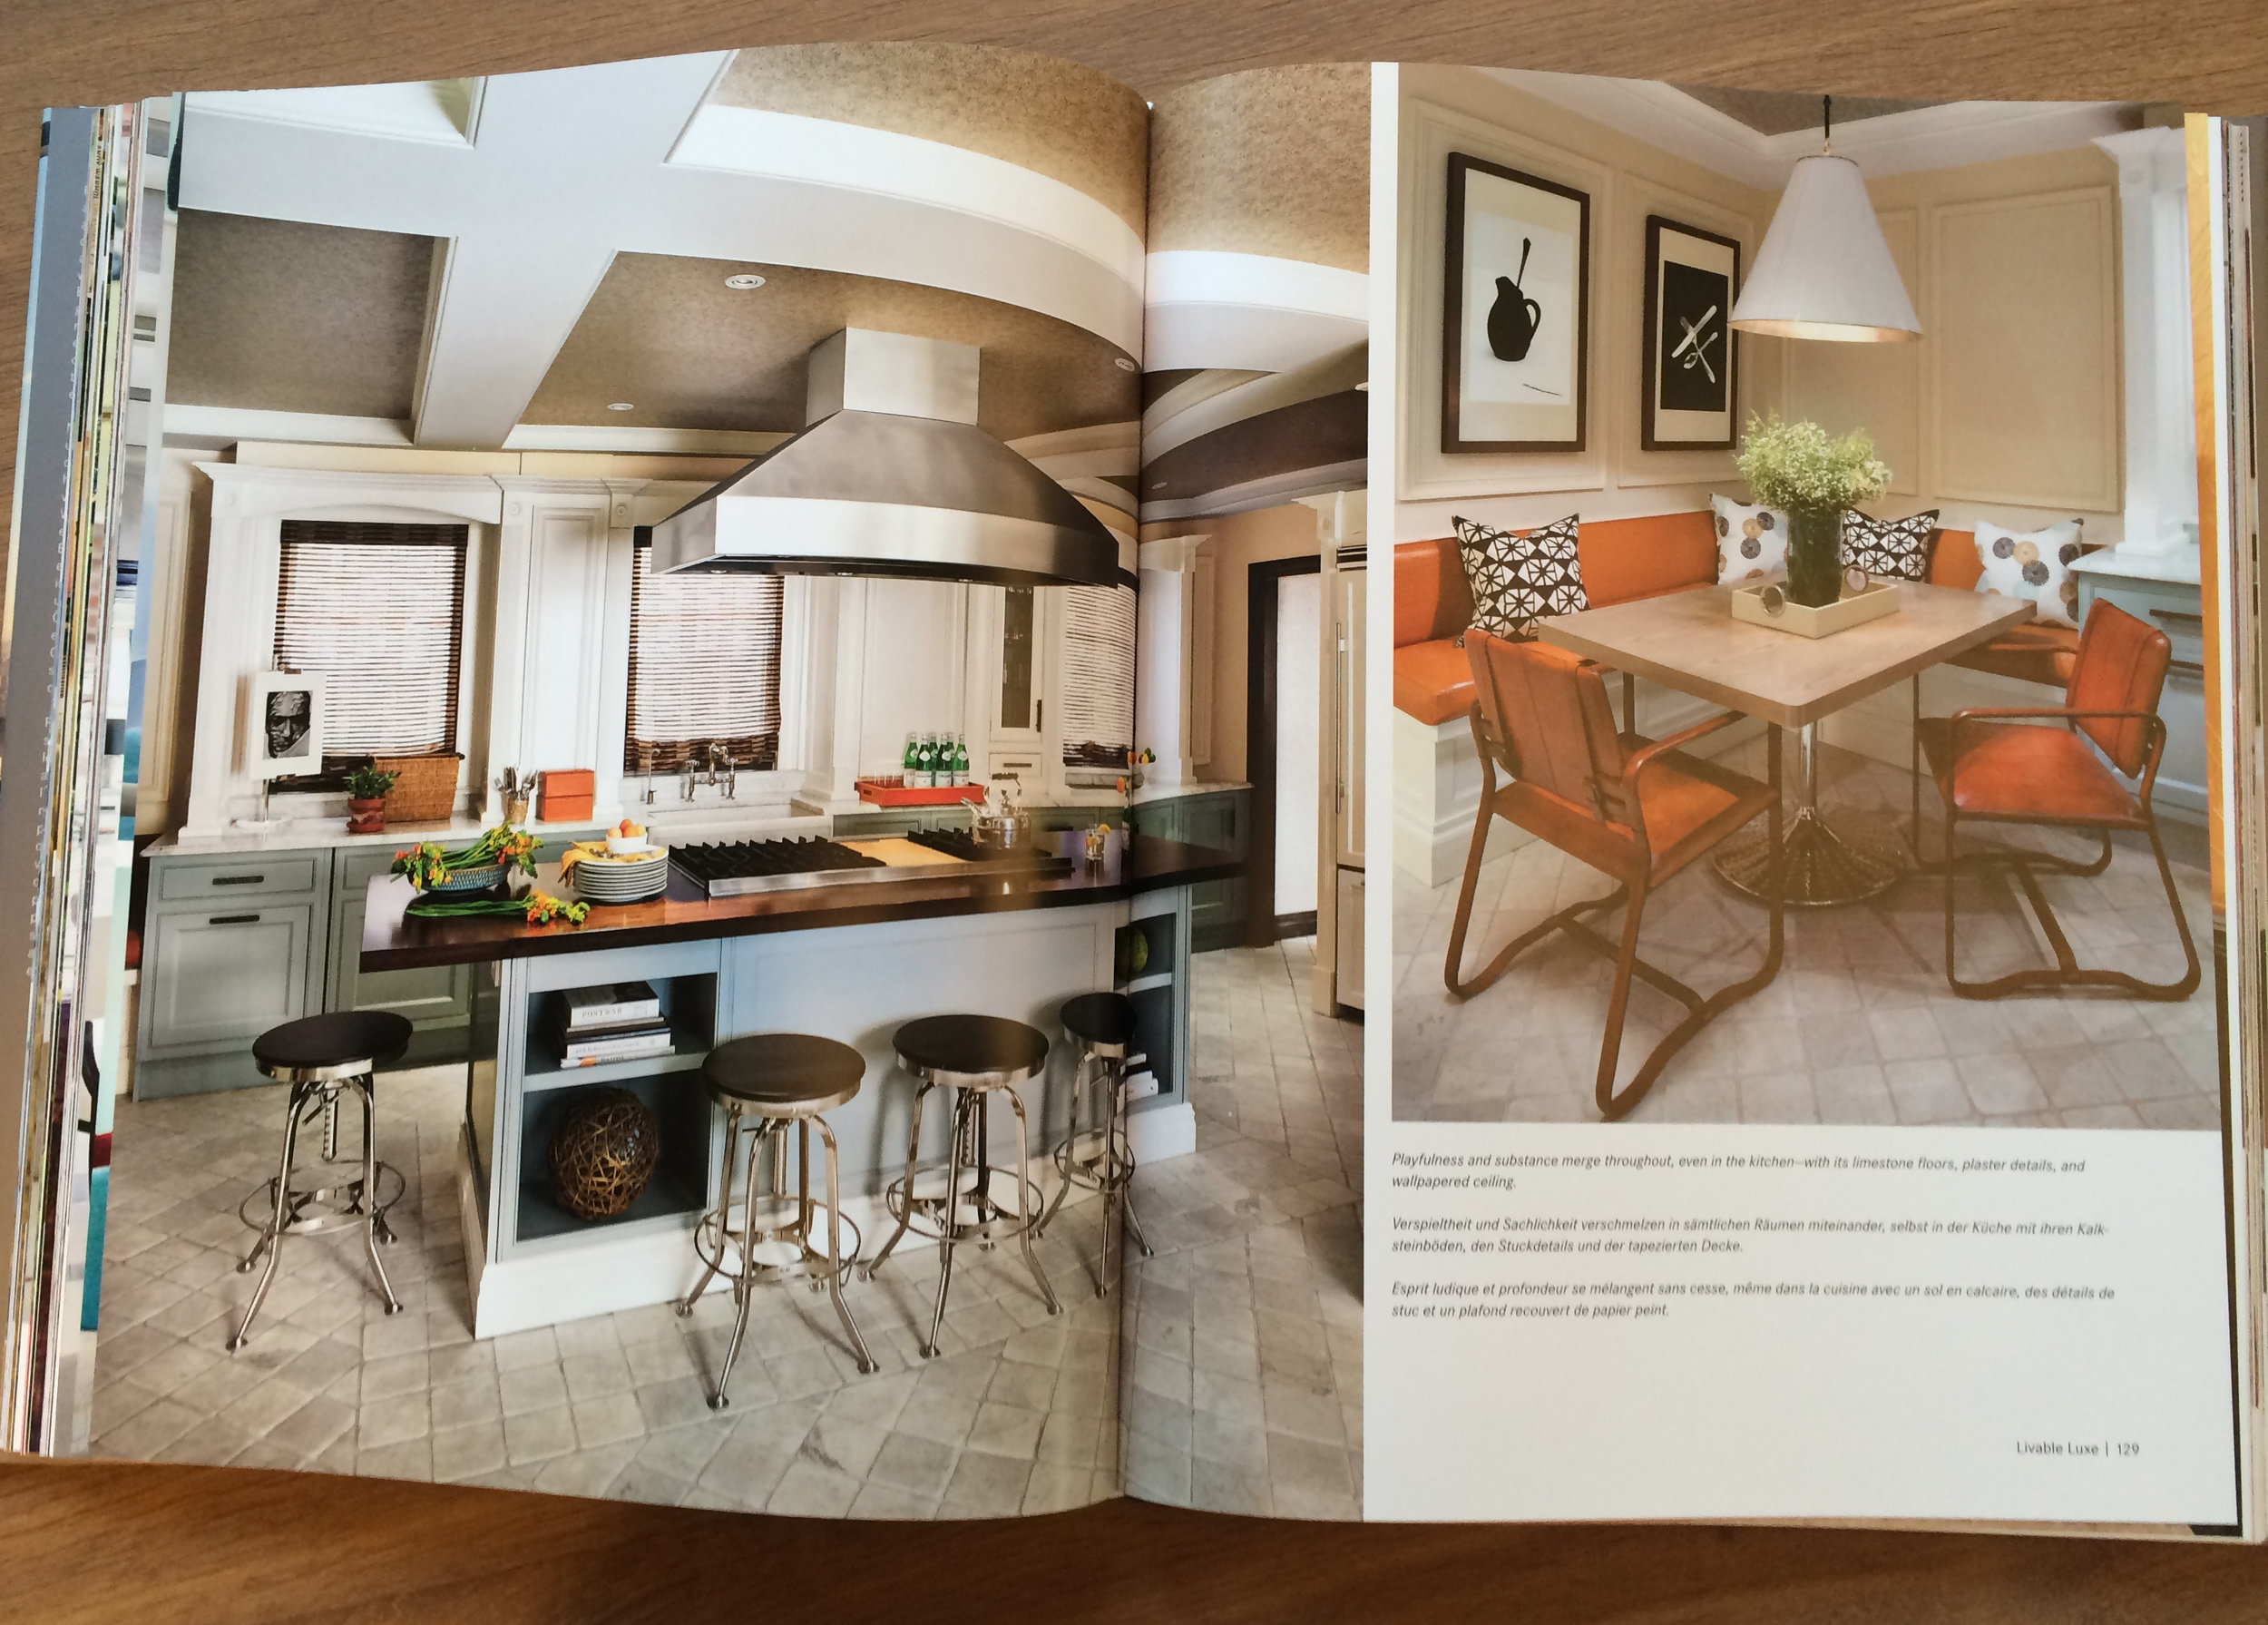 Living In Style New York Book 2014 - Page 9.JPG